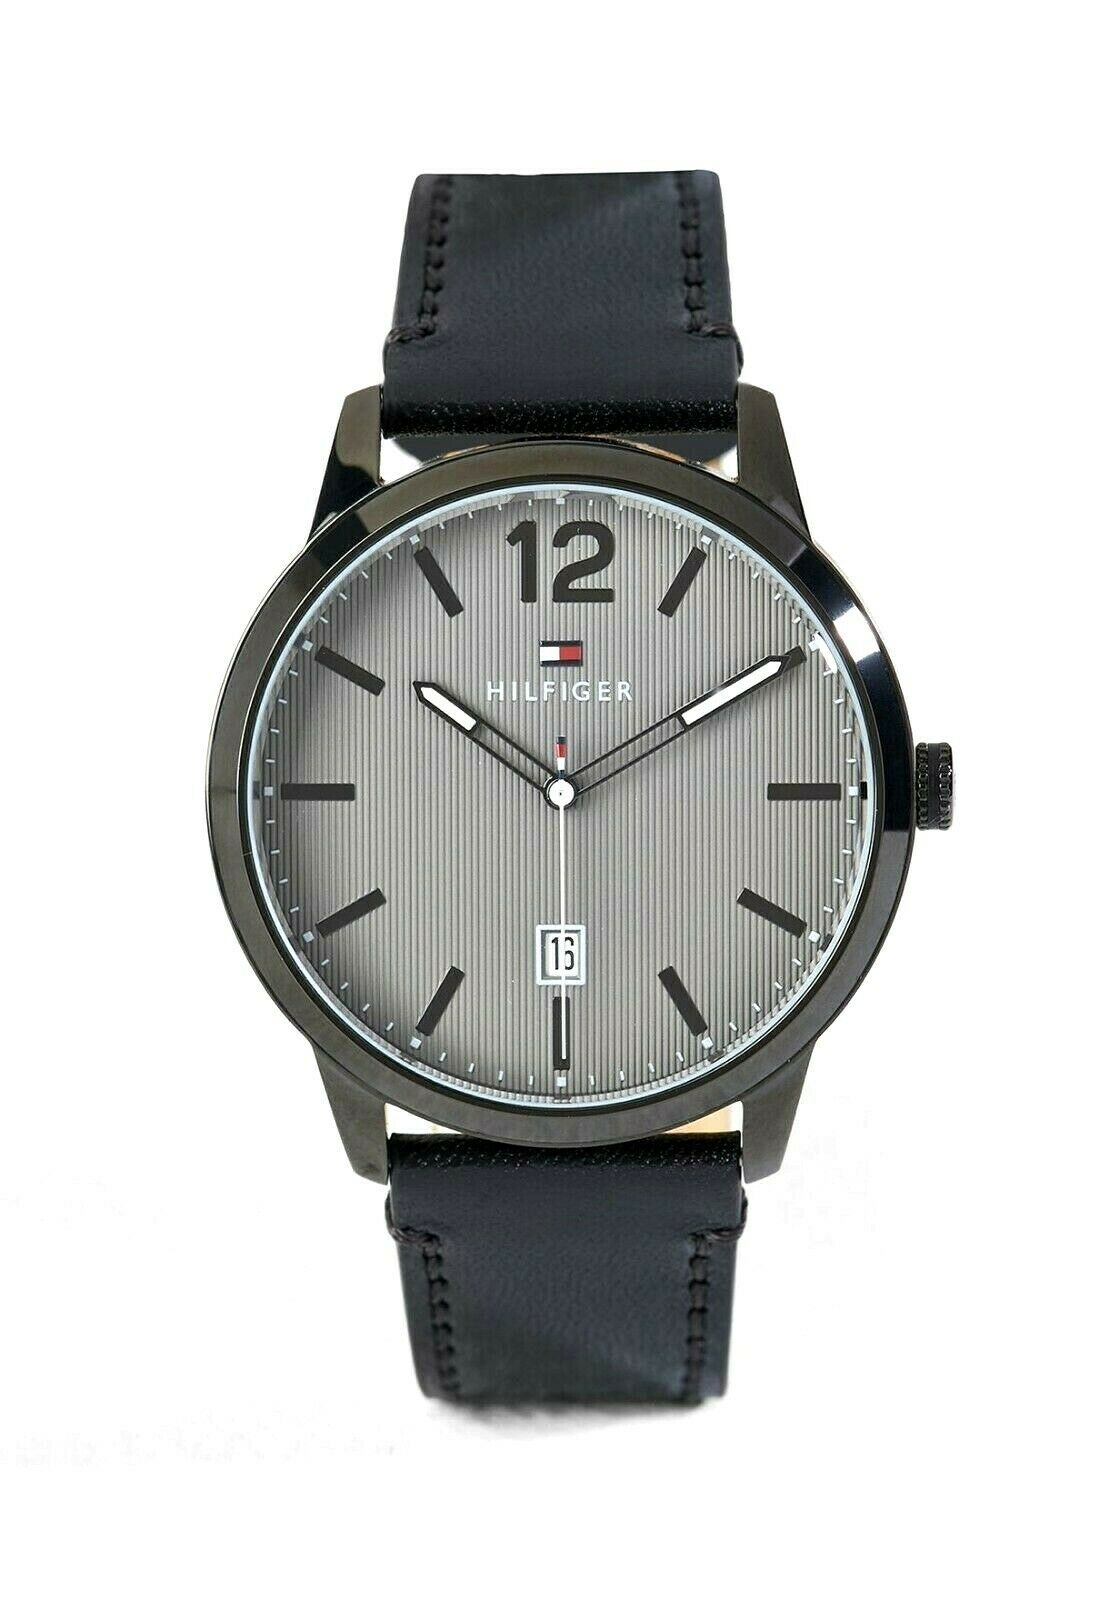 Tommy Hilfiger Men's Watch Leather Dustin Black 1791497 $135